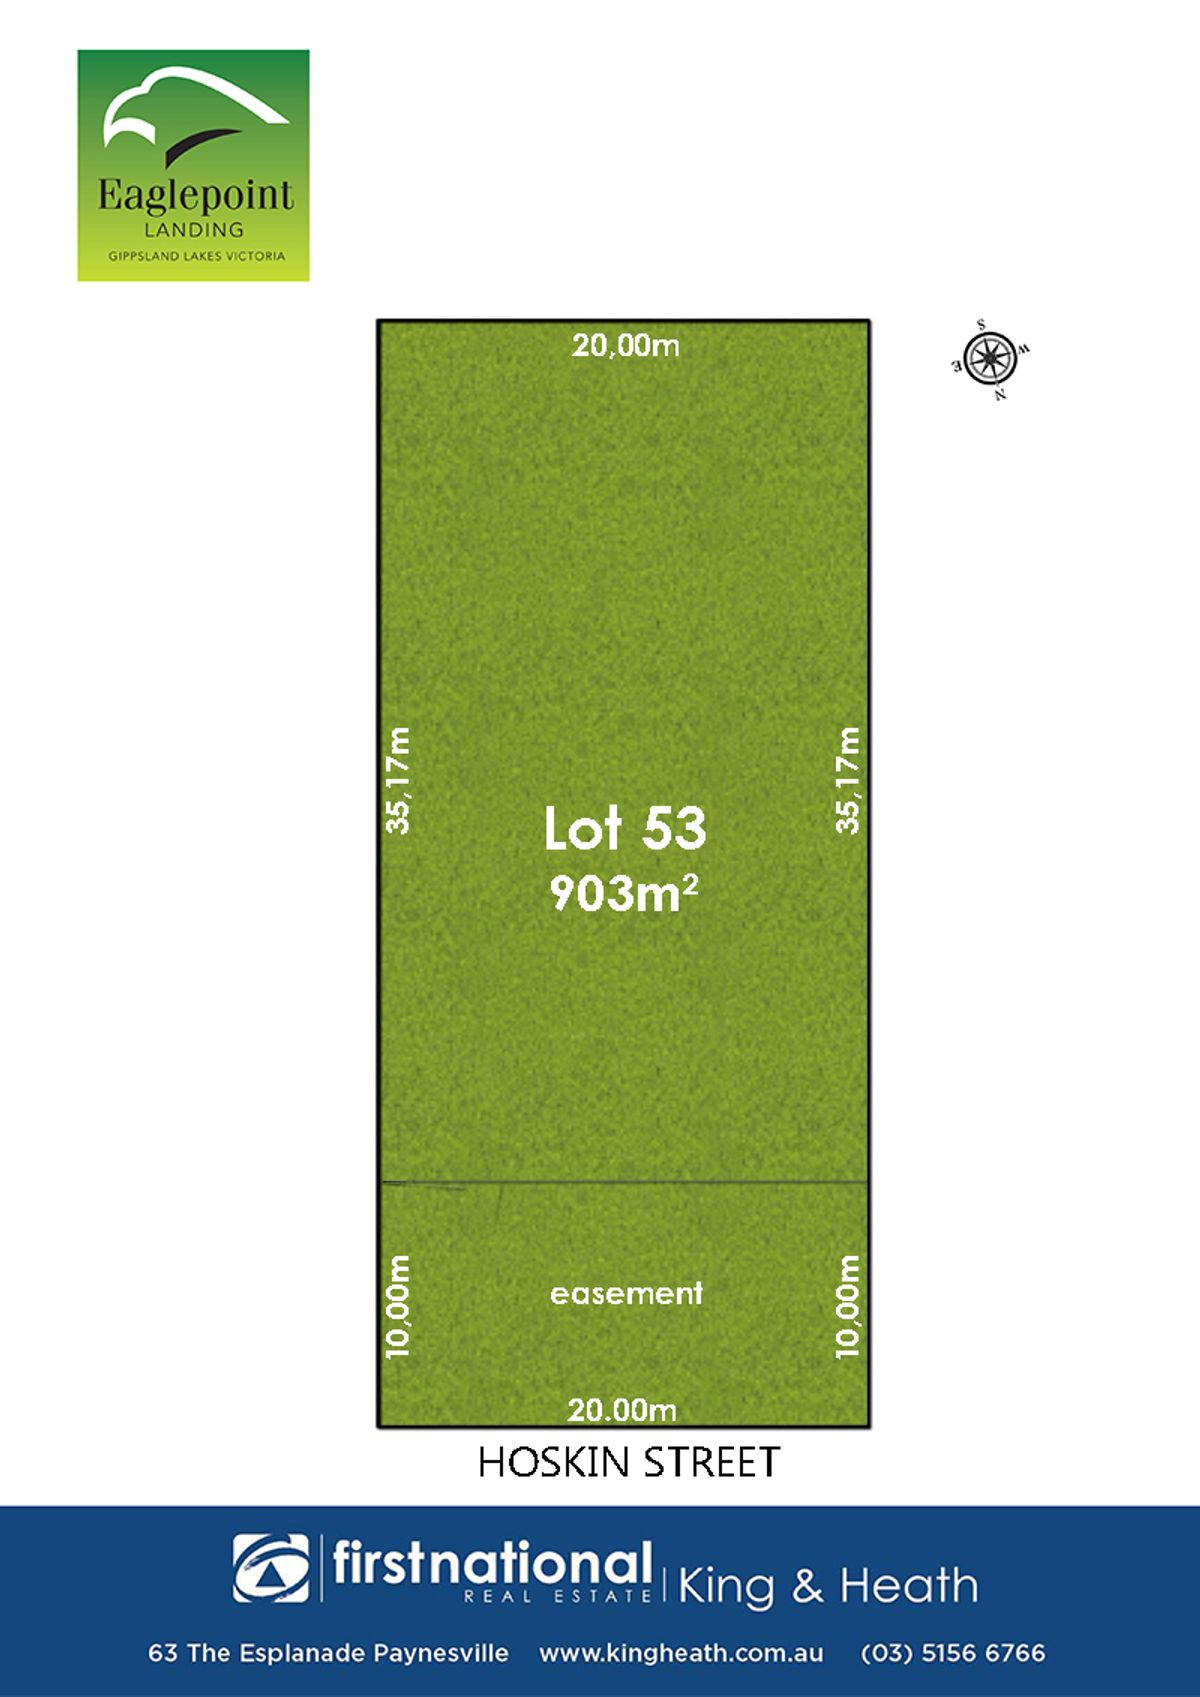 Lot 53, 9 Hoskin Street, Eagle Point, VIC 3878